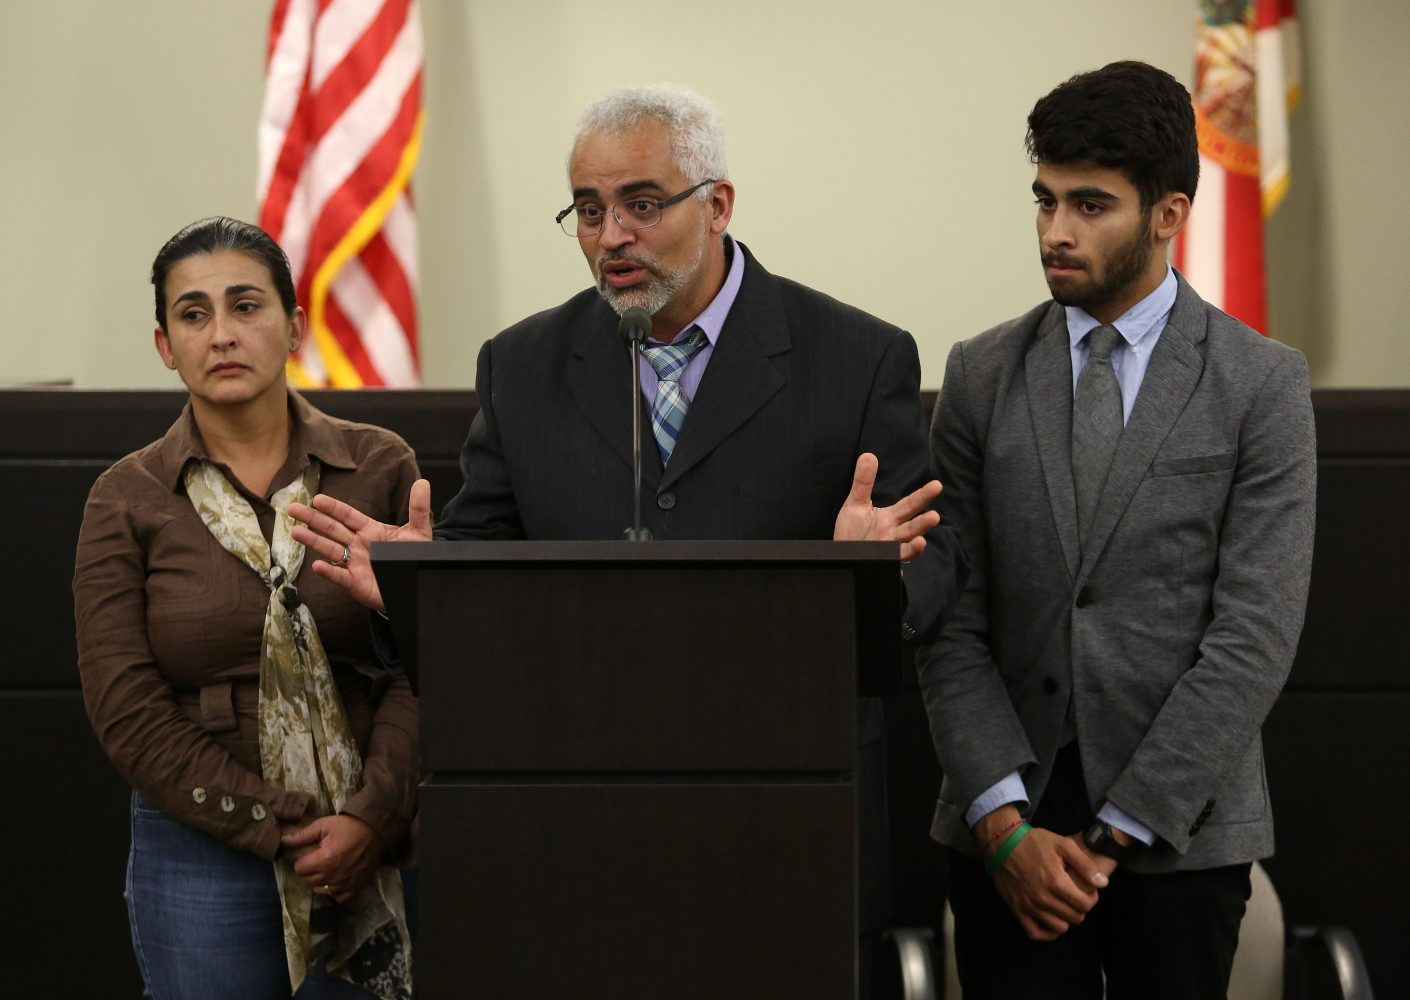 Claudia and Carlos Aguilar and their son Alex speak during a press conference following the first degree murder conviction and life sentencing of Pedro Bravo for the murder of their oldest son Christian at the Alachua County Criminal Justice Center Friday, August 15, 2014.  (Doug Finger/The Gainesville Sun/Pool)